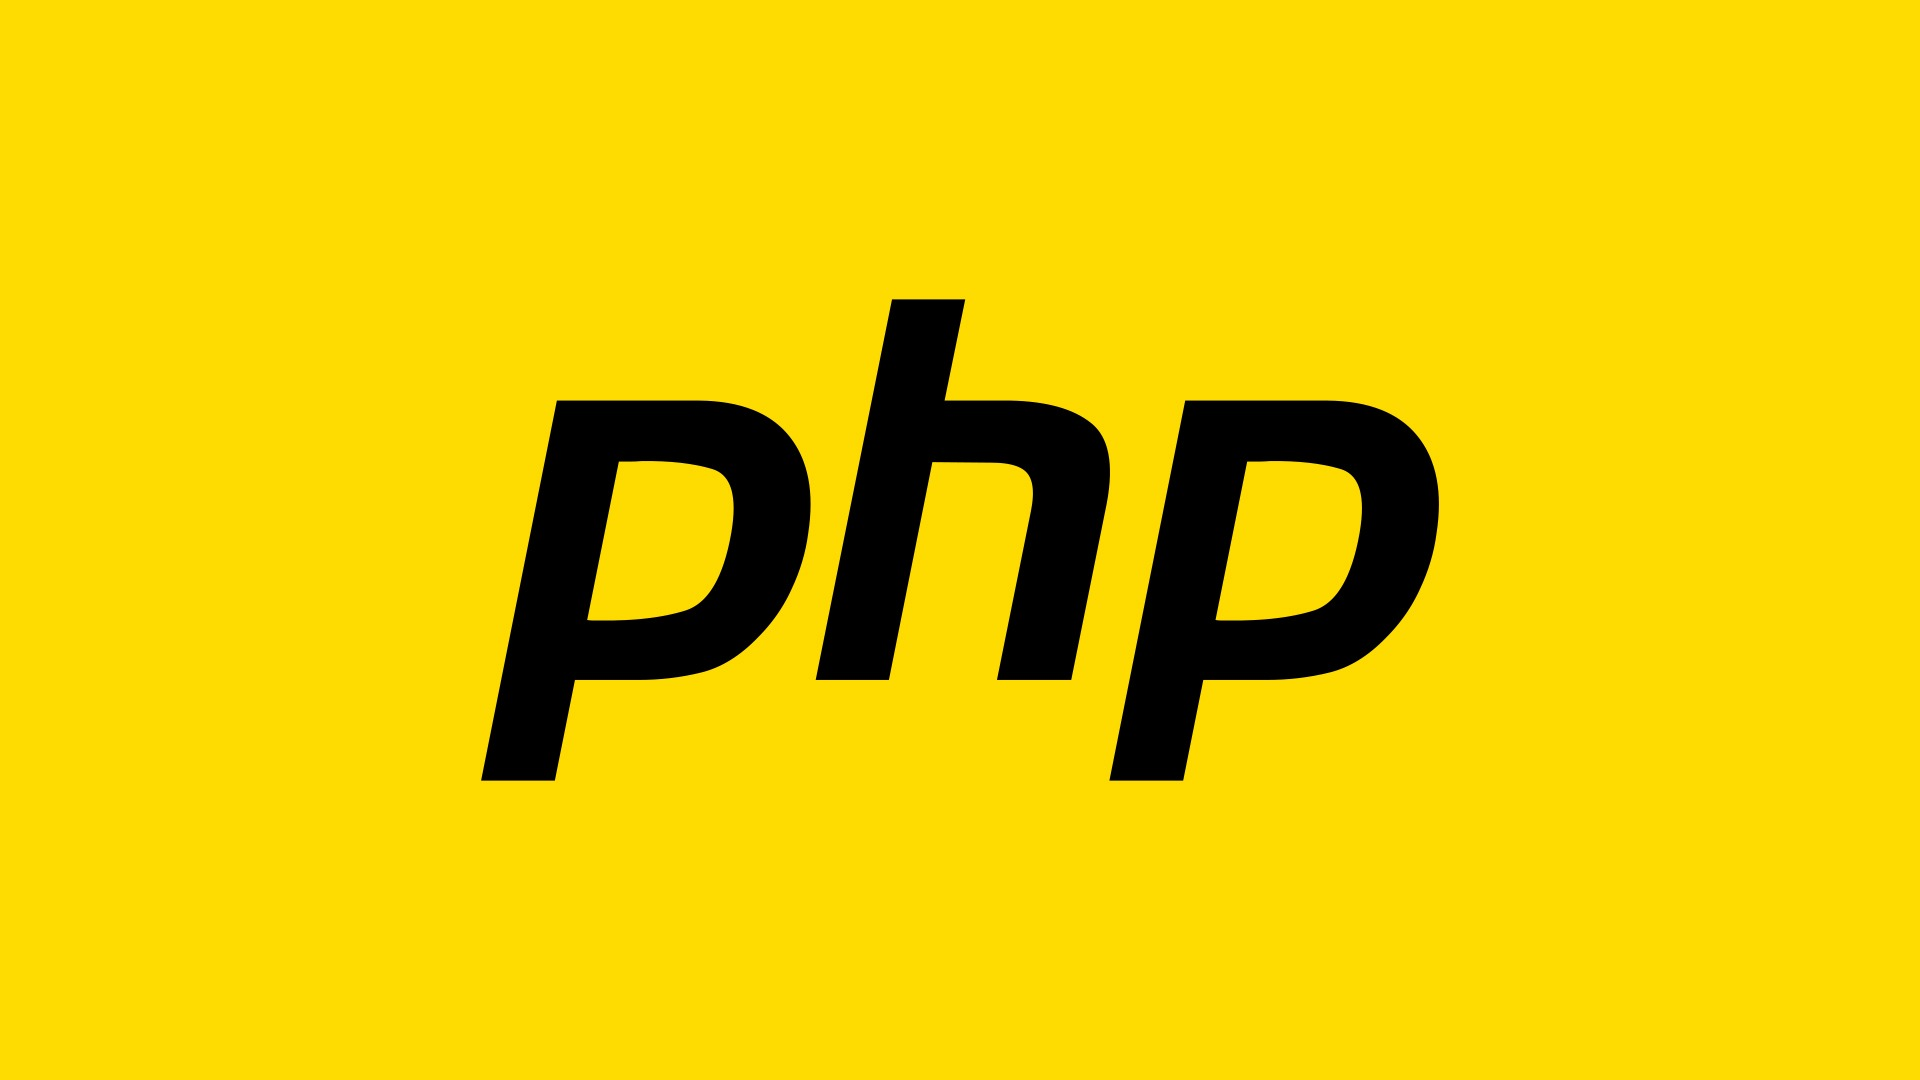 PHP update coming soon 3